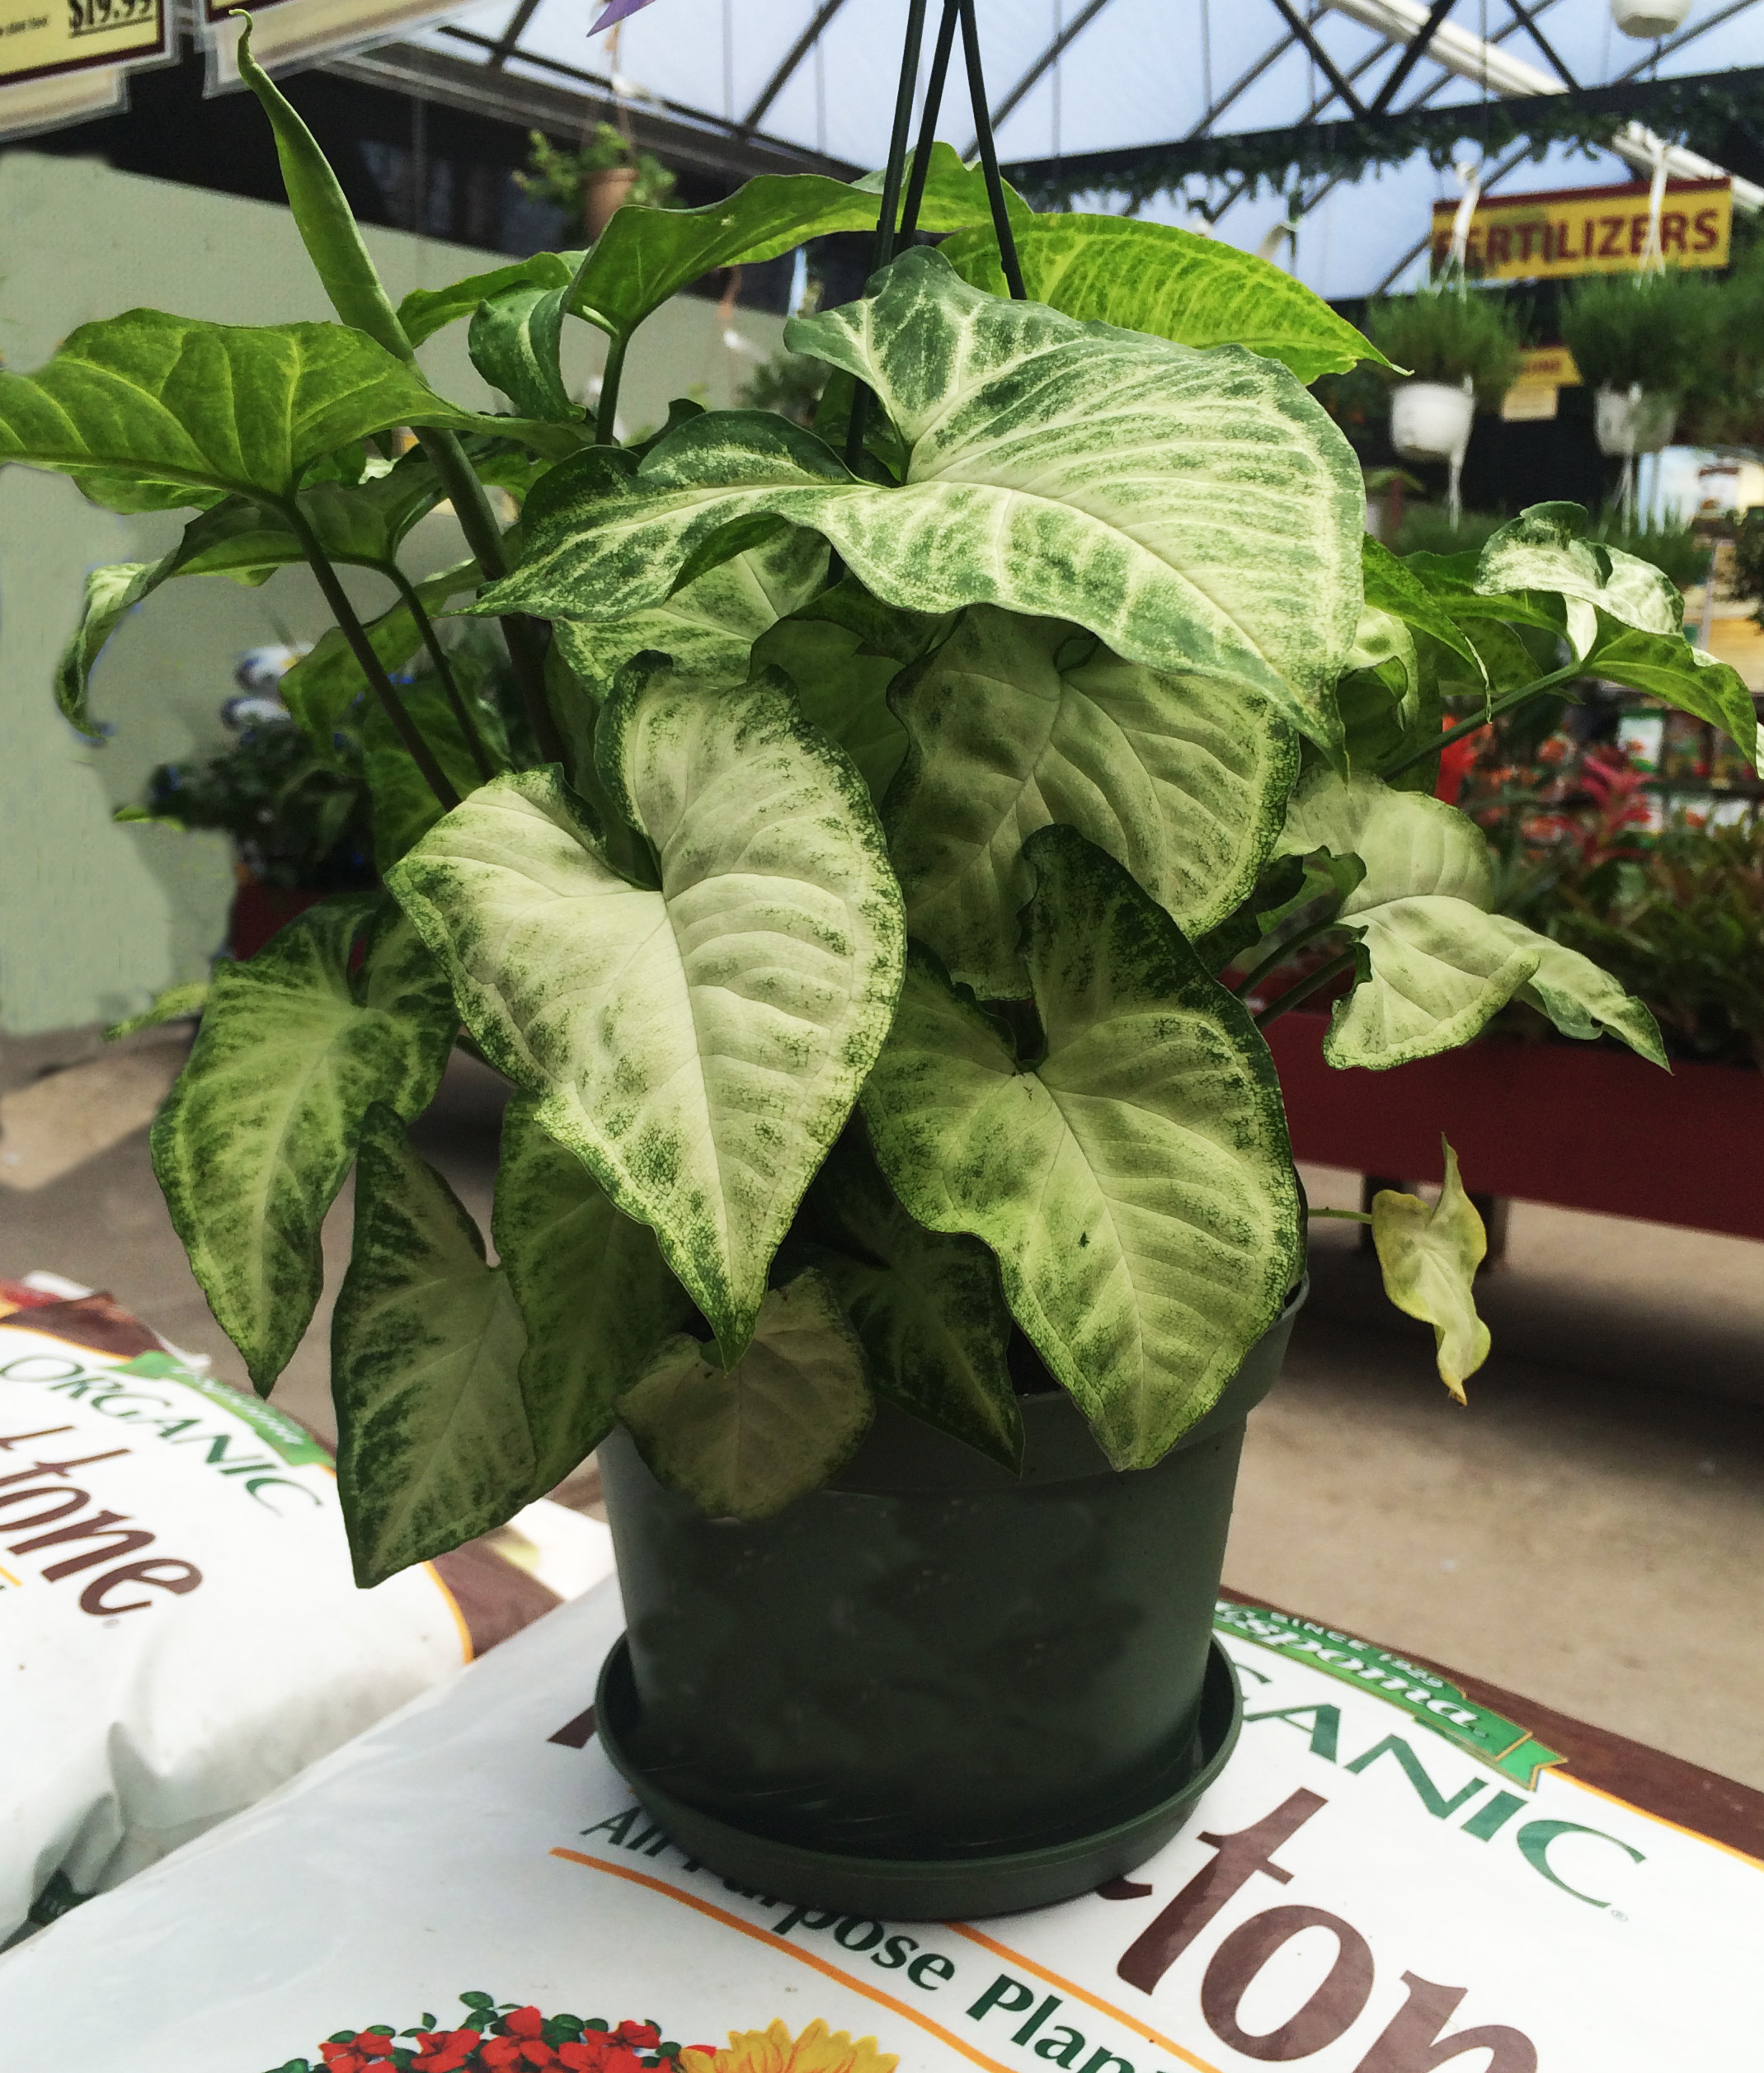 Perfect Indoor Plants for Your Home - Dambly\'s Garden Center